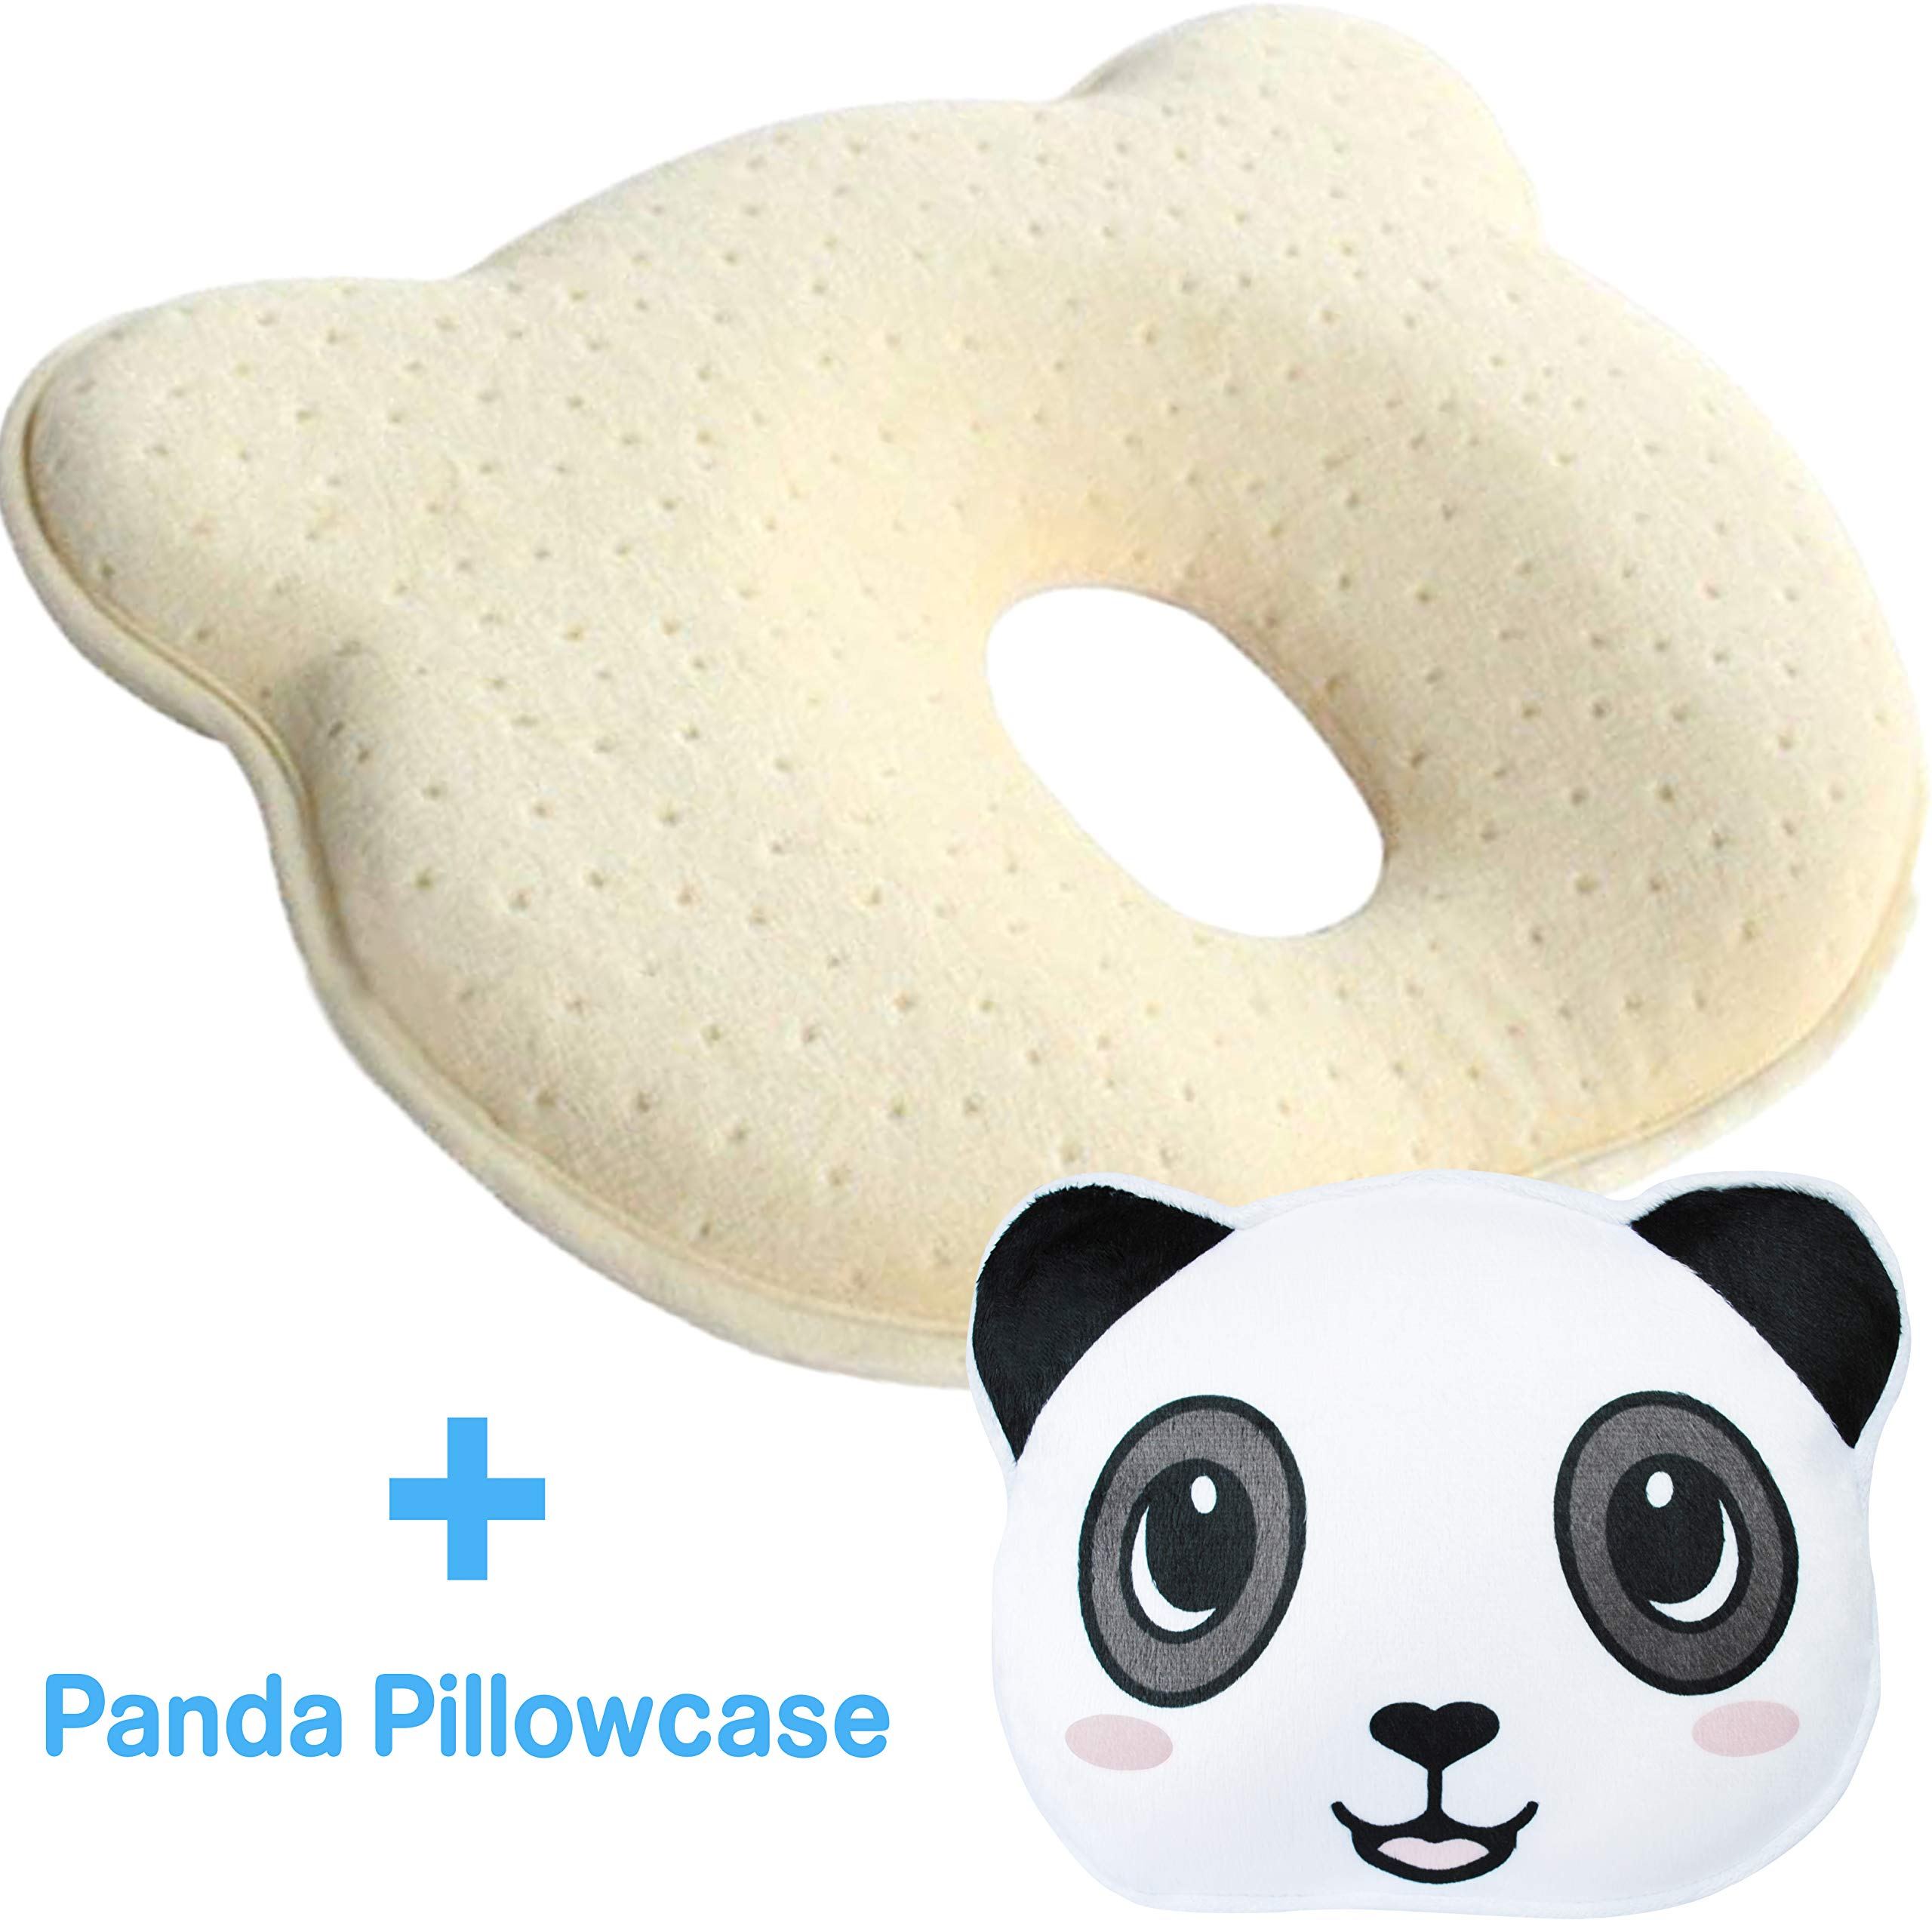 Newborn Baby Head Shaping Pillow, Prevents & Corrects Flat Head Syndrome | Supports Healthy Neck and Spine Development | Memory Foam Pillow with a Washable Panda Pillowcase